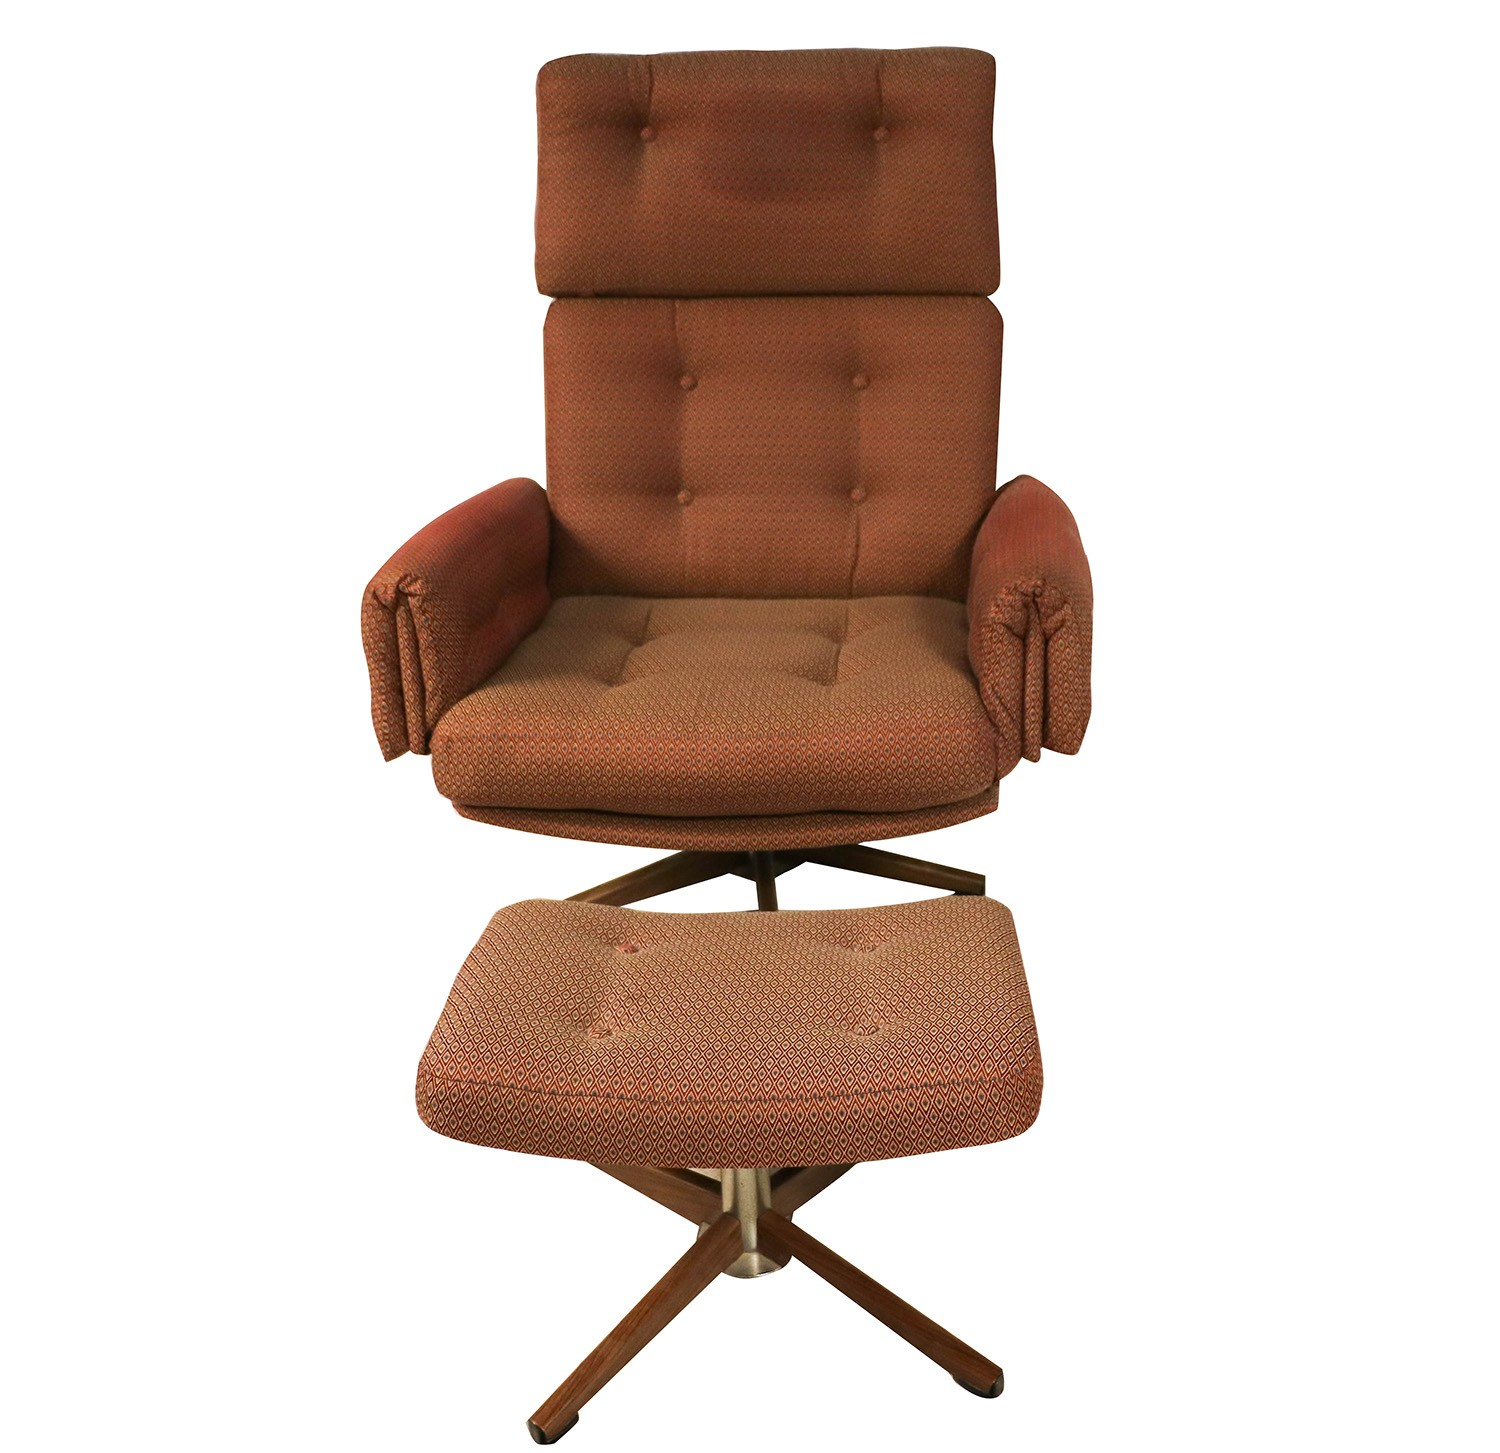 Mid Century Lounge Chair Mid Century Lounge Chair And Ottoman